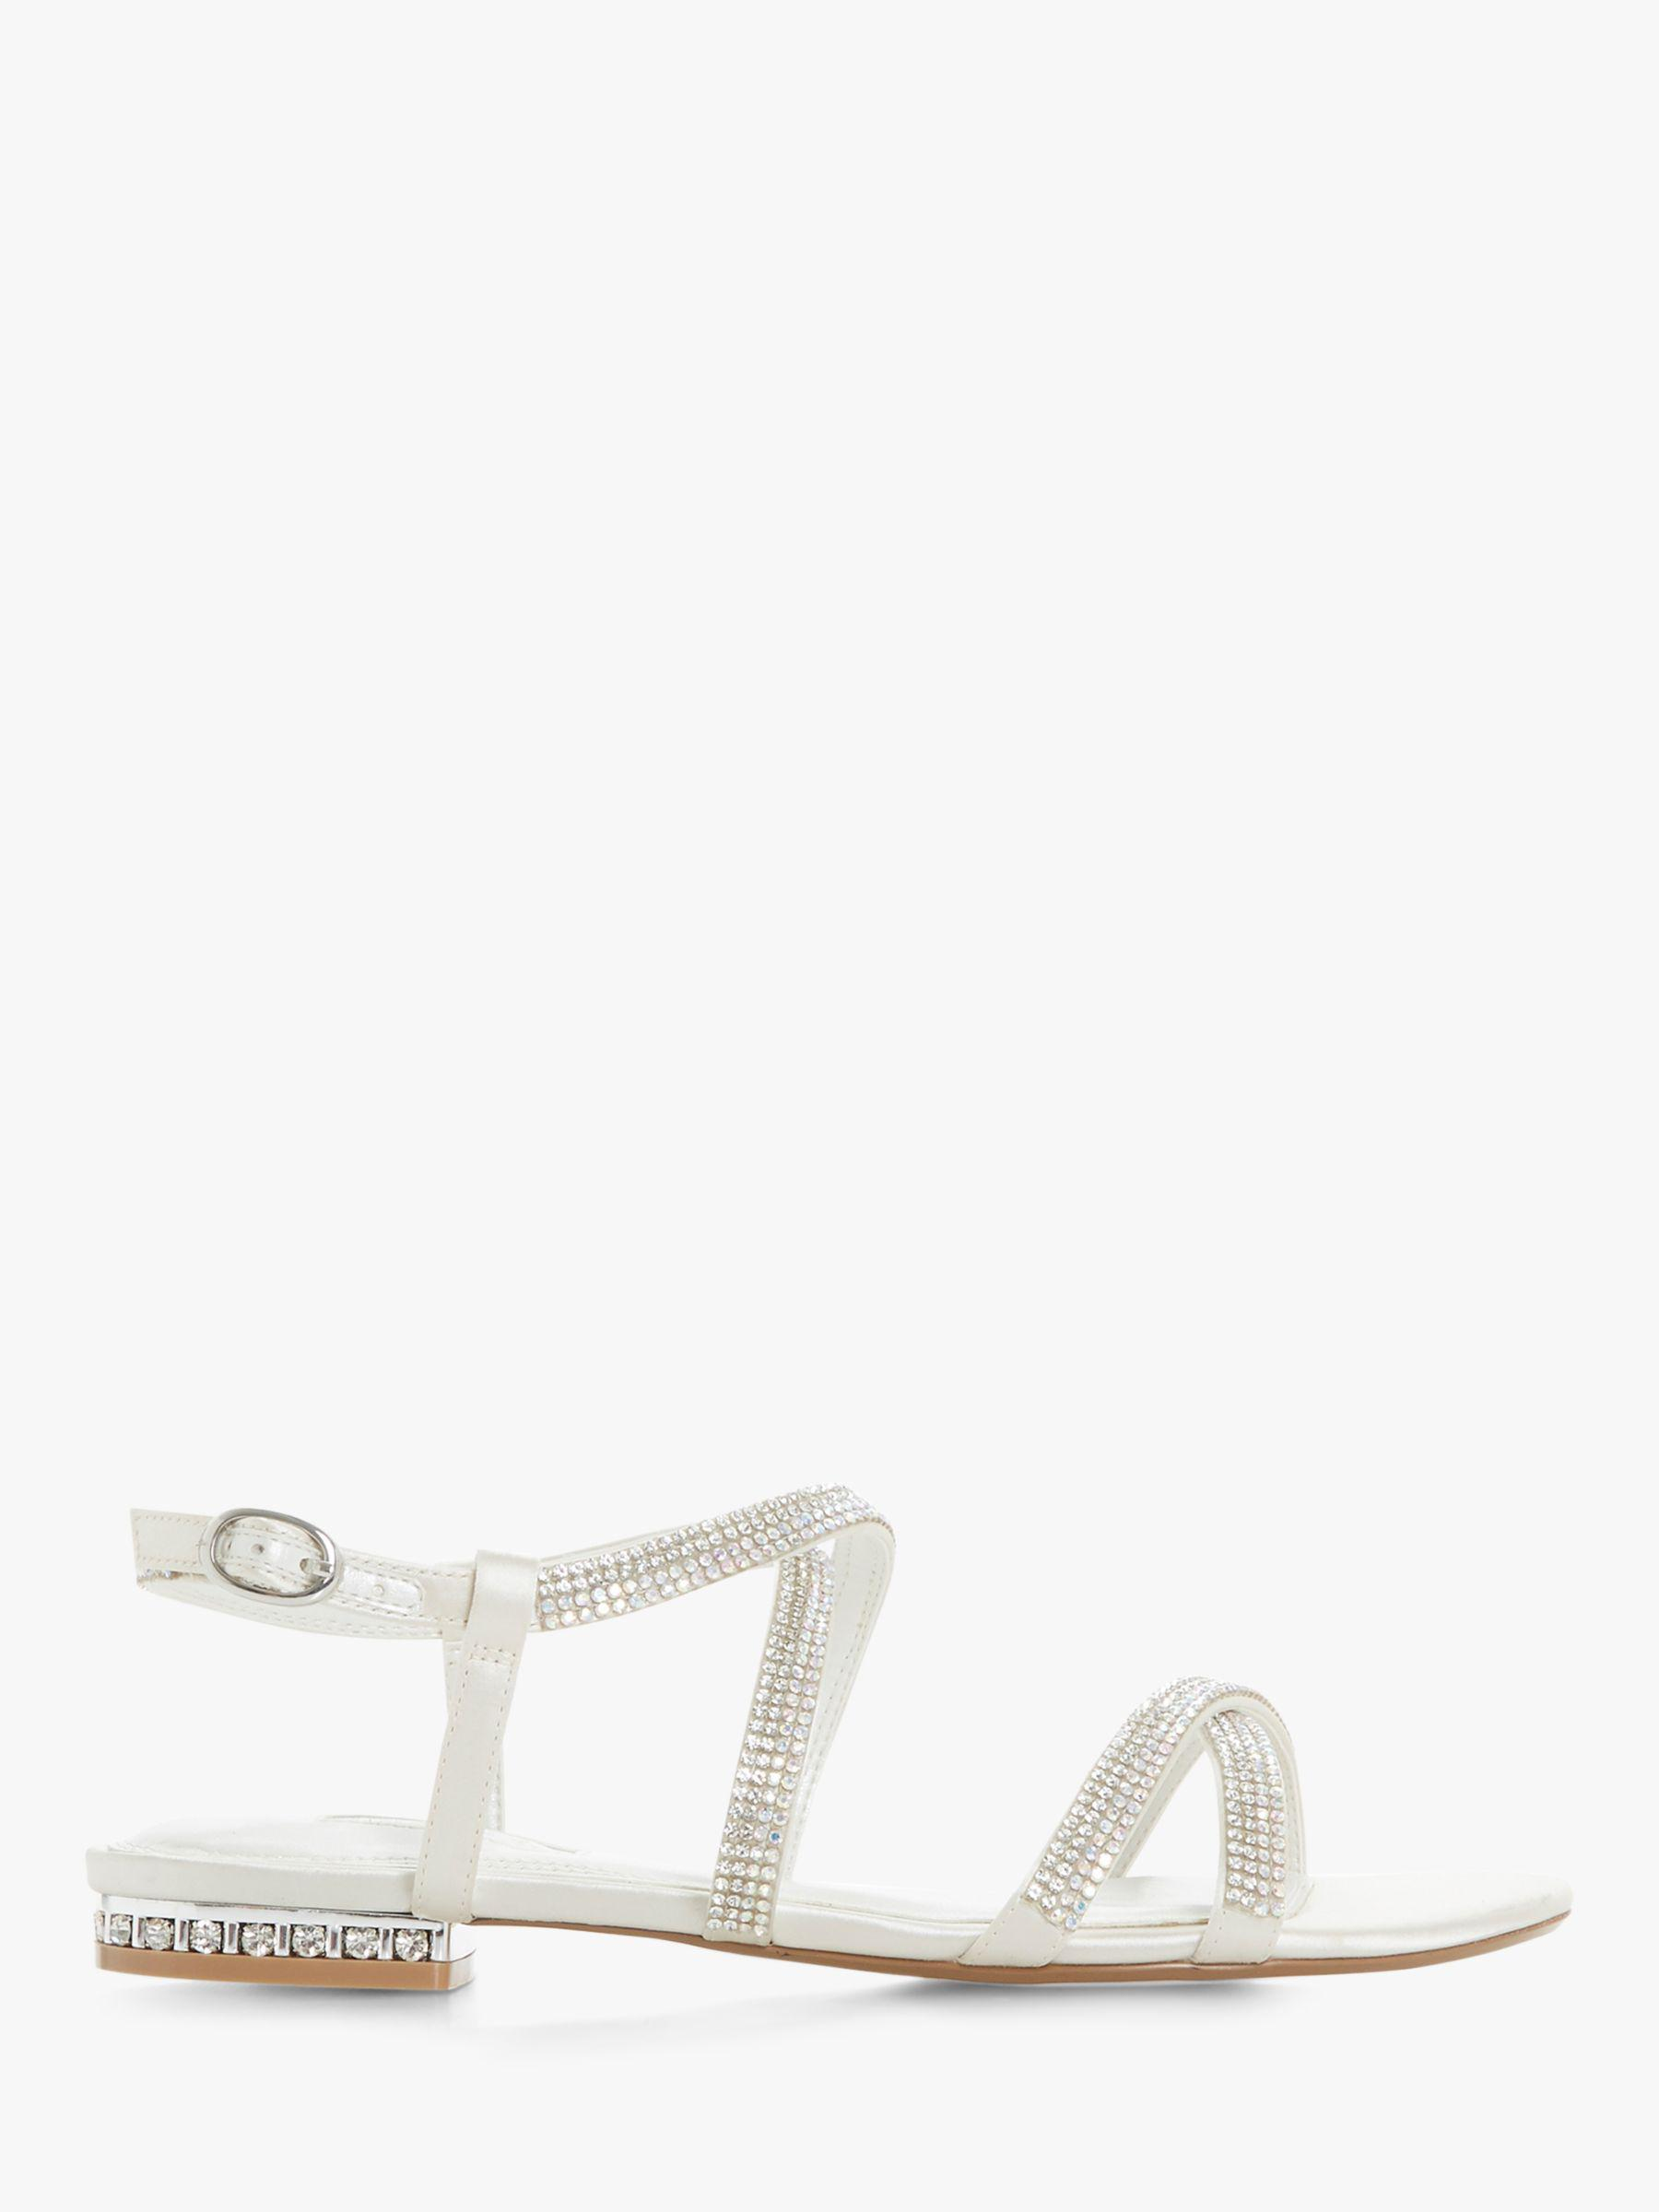 2510f0e589958f Dune Bridal Collection Nicest Diamante Strap Sandals in White - Lyst